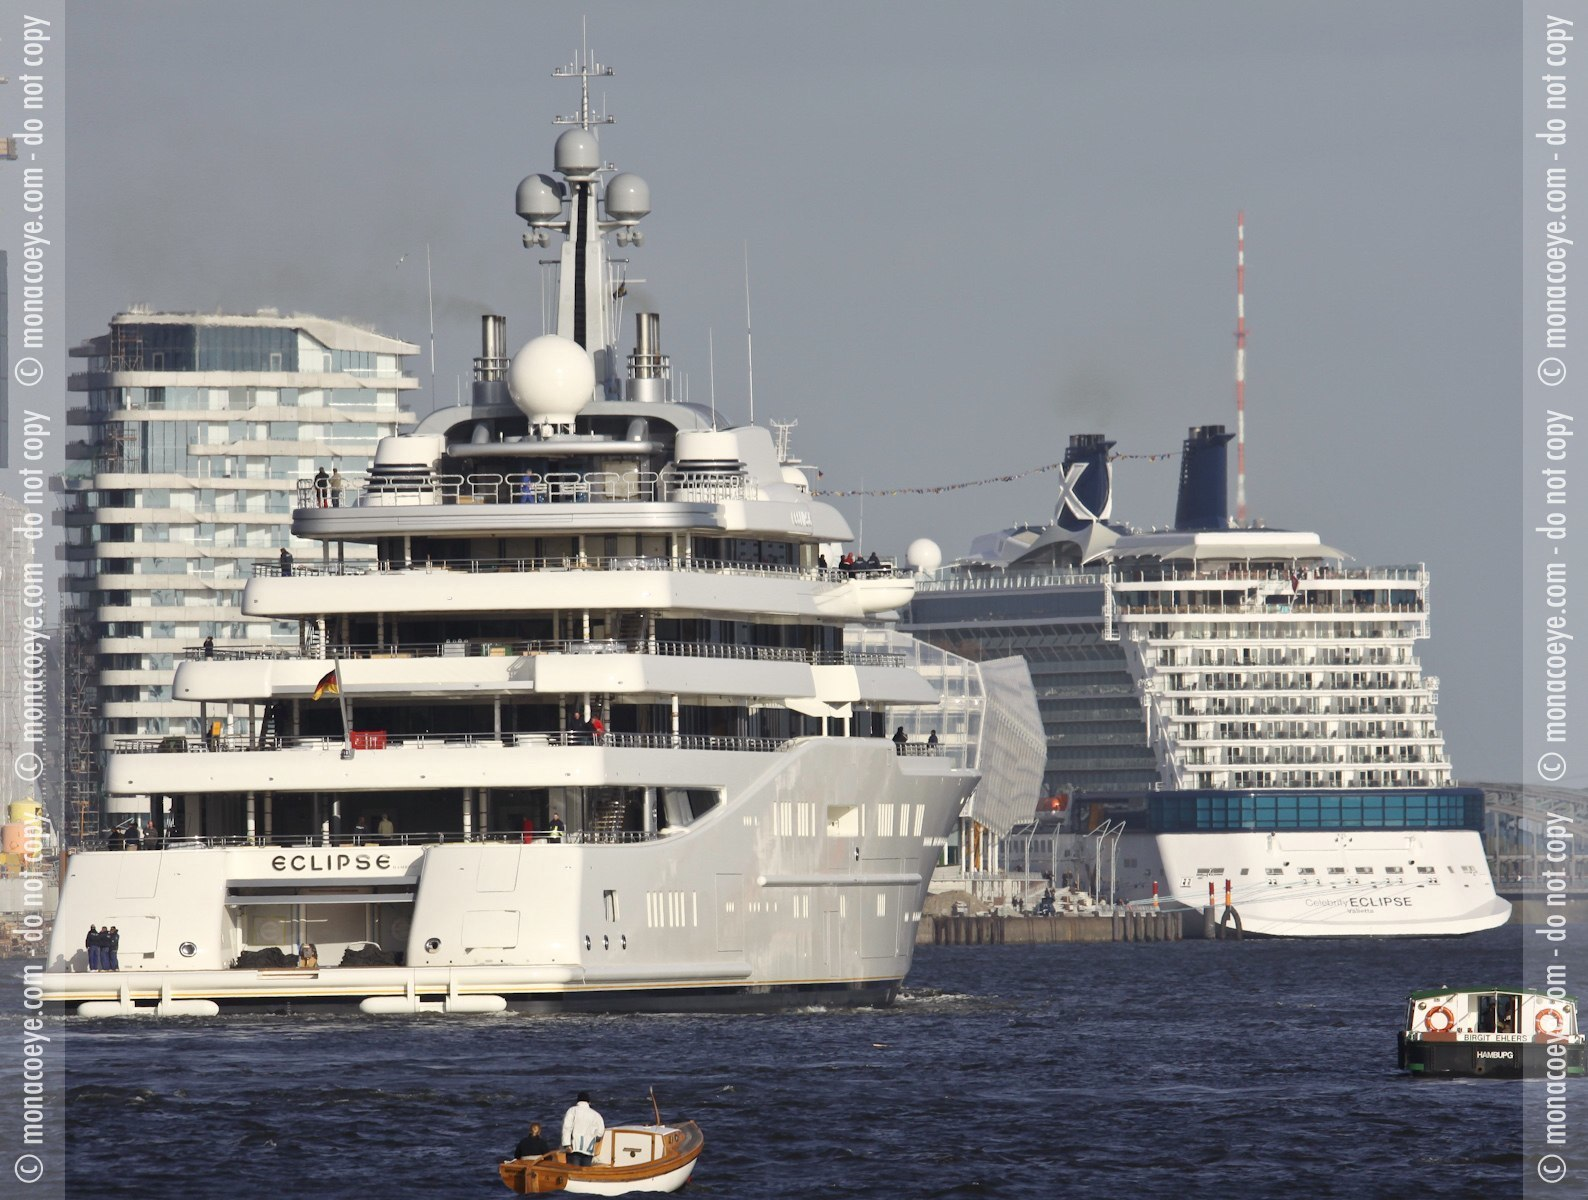 Roman's Abramovich's new yacht Eclipse crosses recently launched cruise ship Celebrity Eclipse